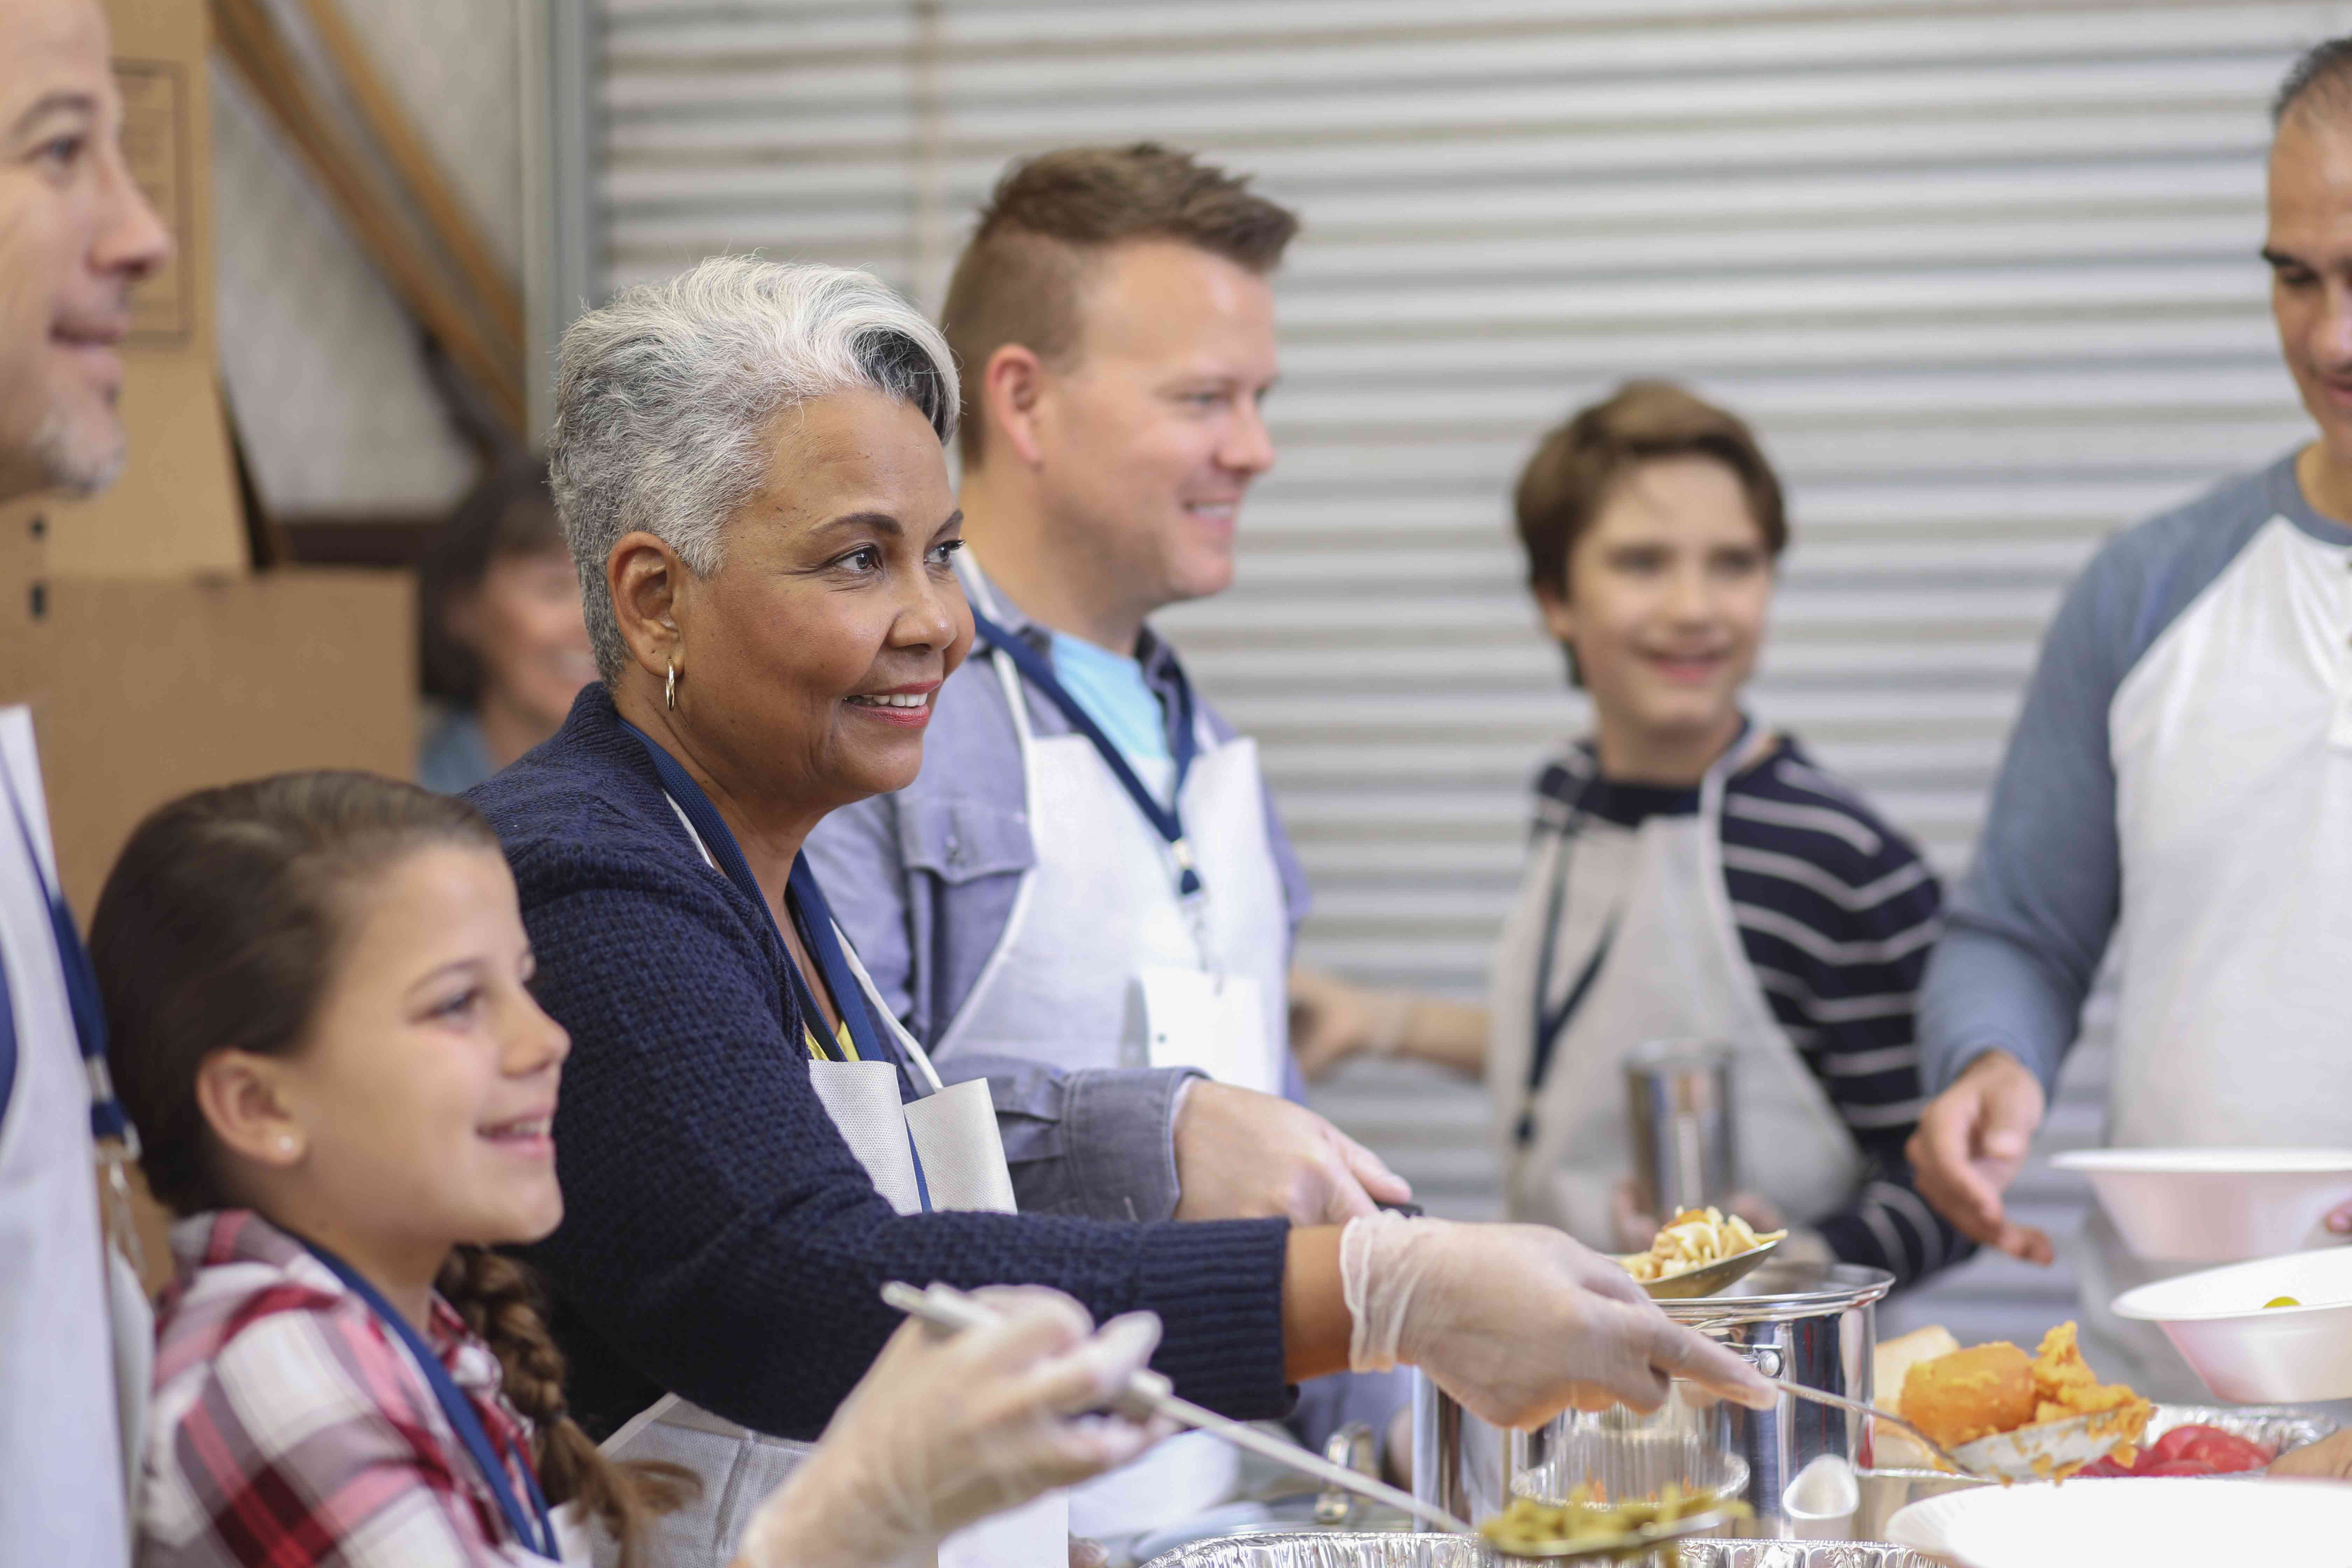 Multi-ethnic group of volunteers serves food at soup kitchen.